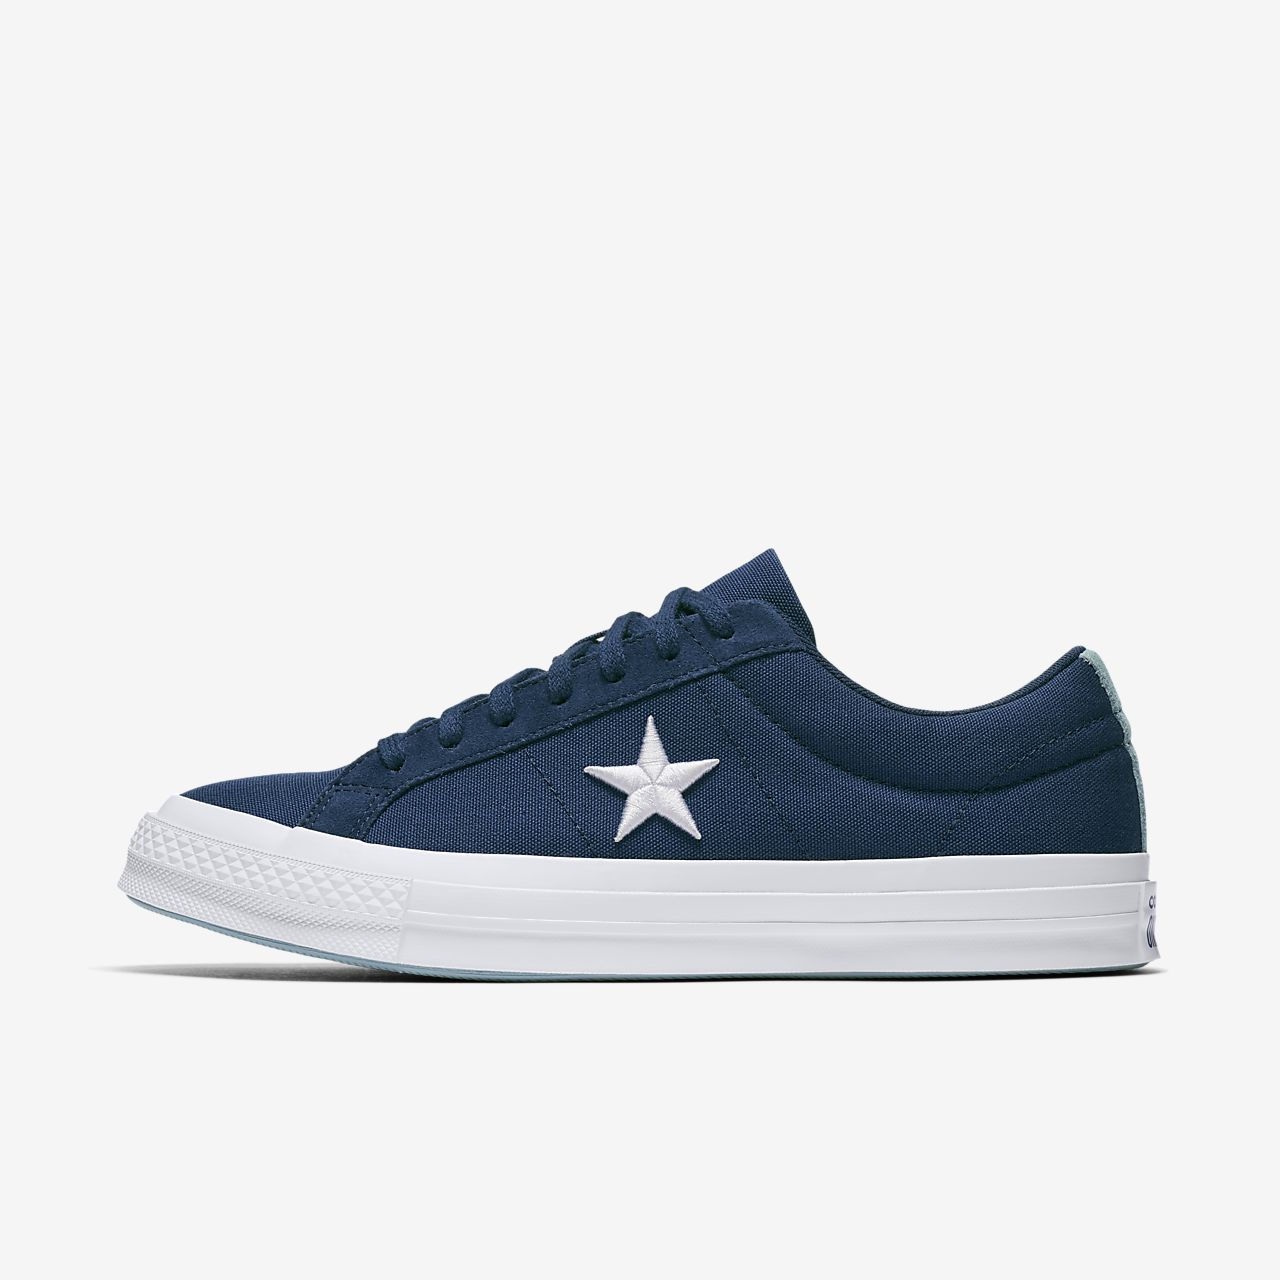 Converse One Star Country Pride Canvas Low Top Unisex Shoe